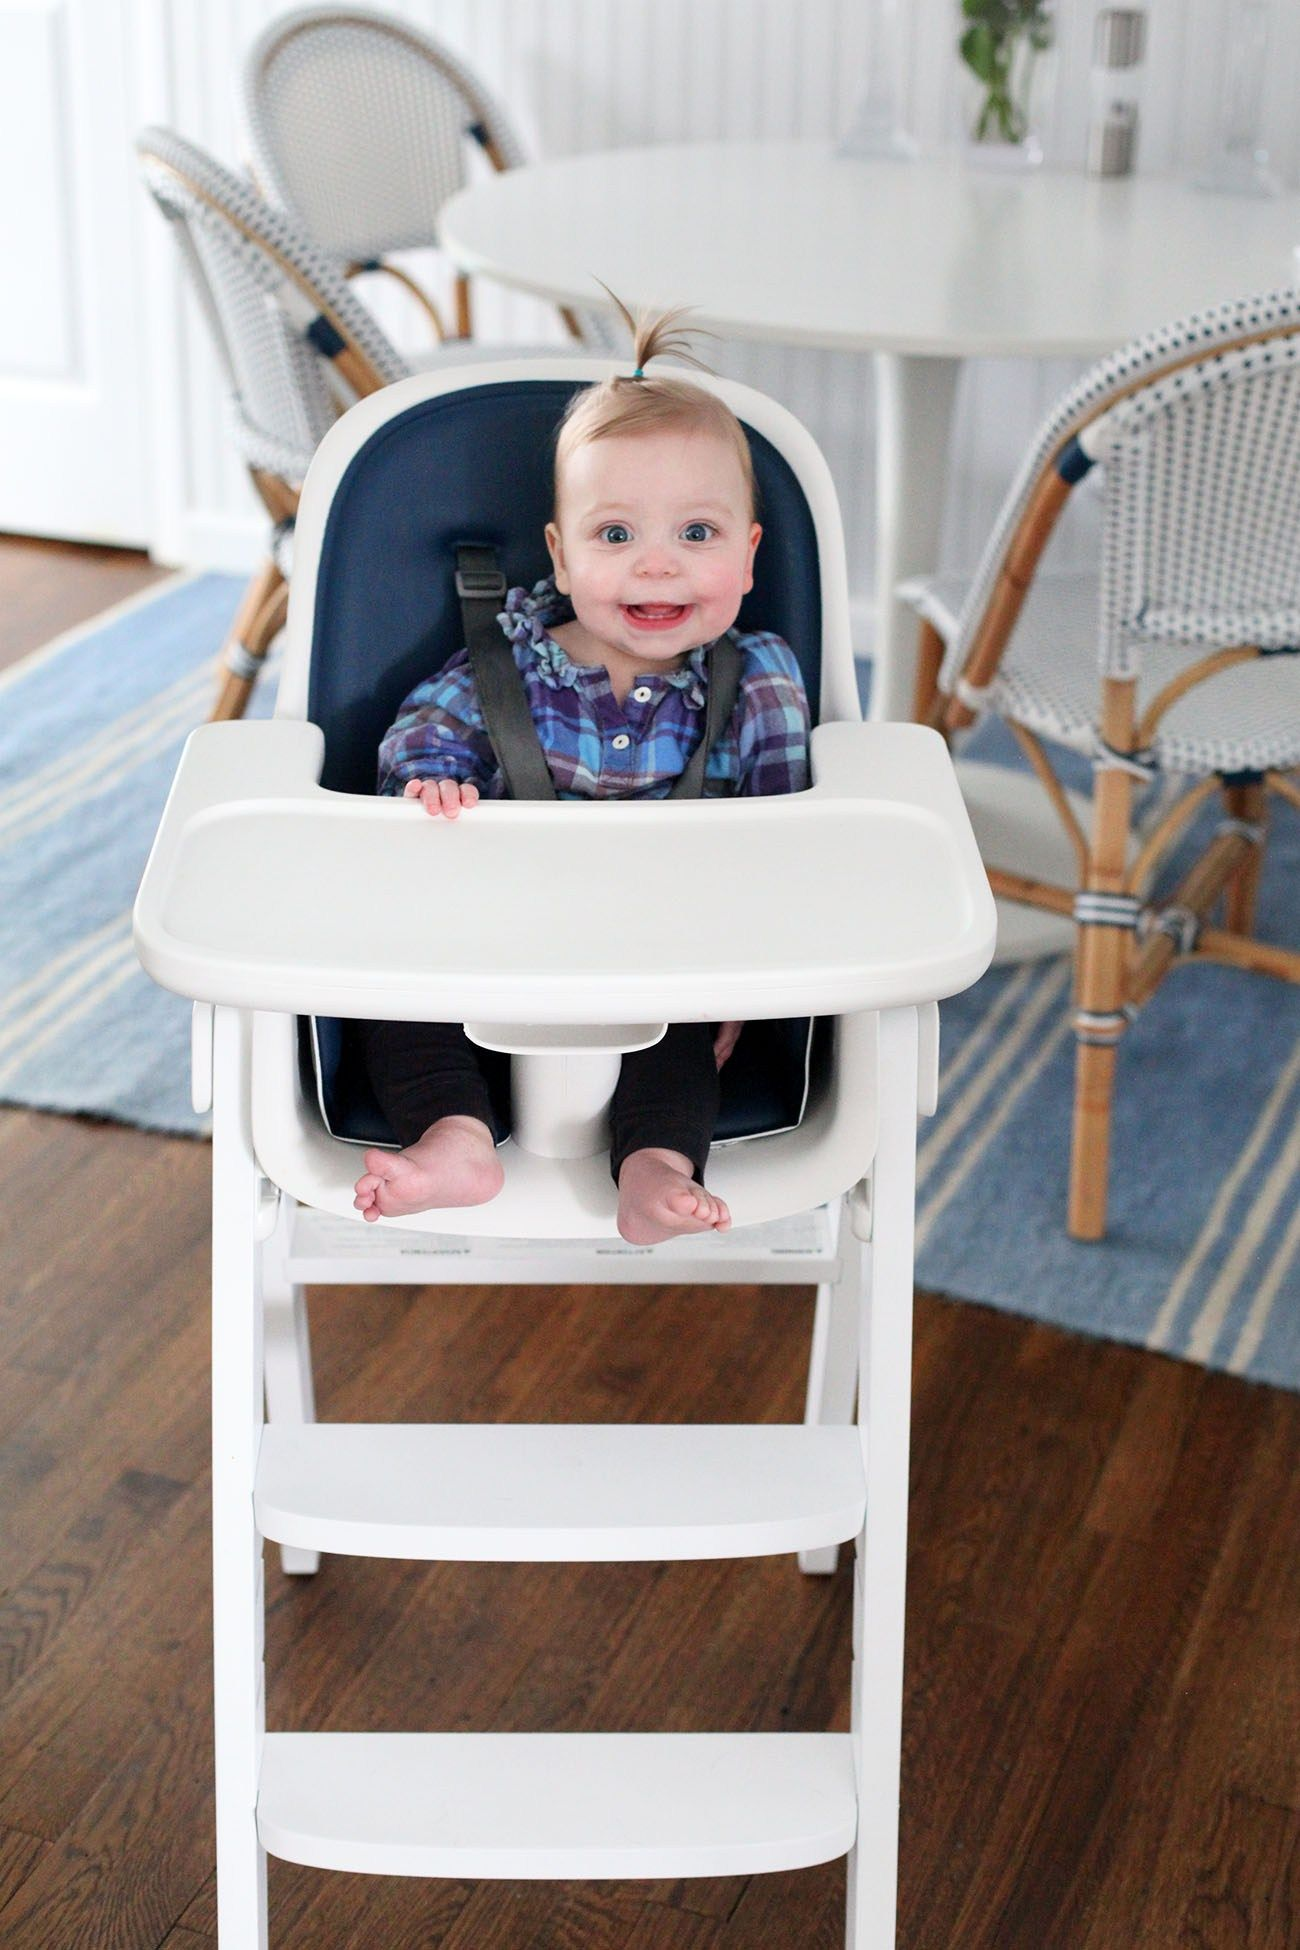 OXO Tot Sprout High Chair Review | Oxo tot sprout, Oxo tot